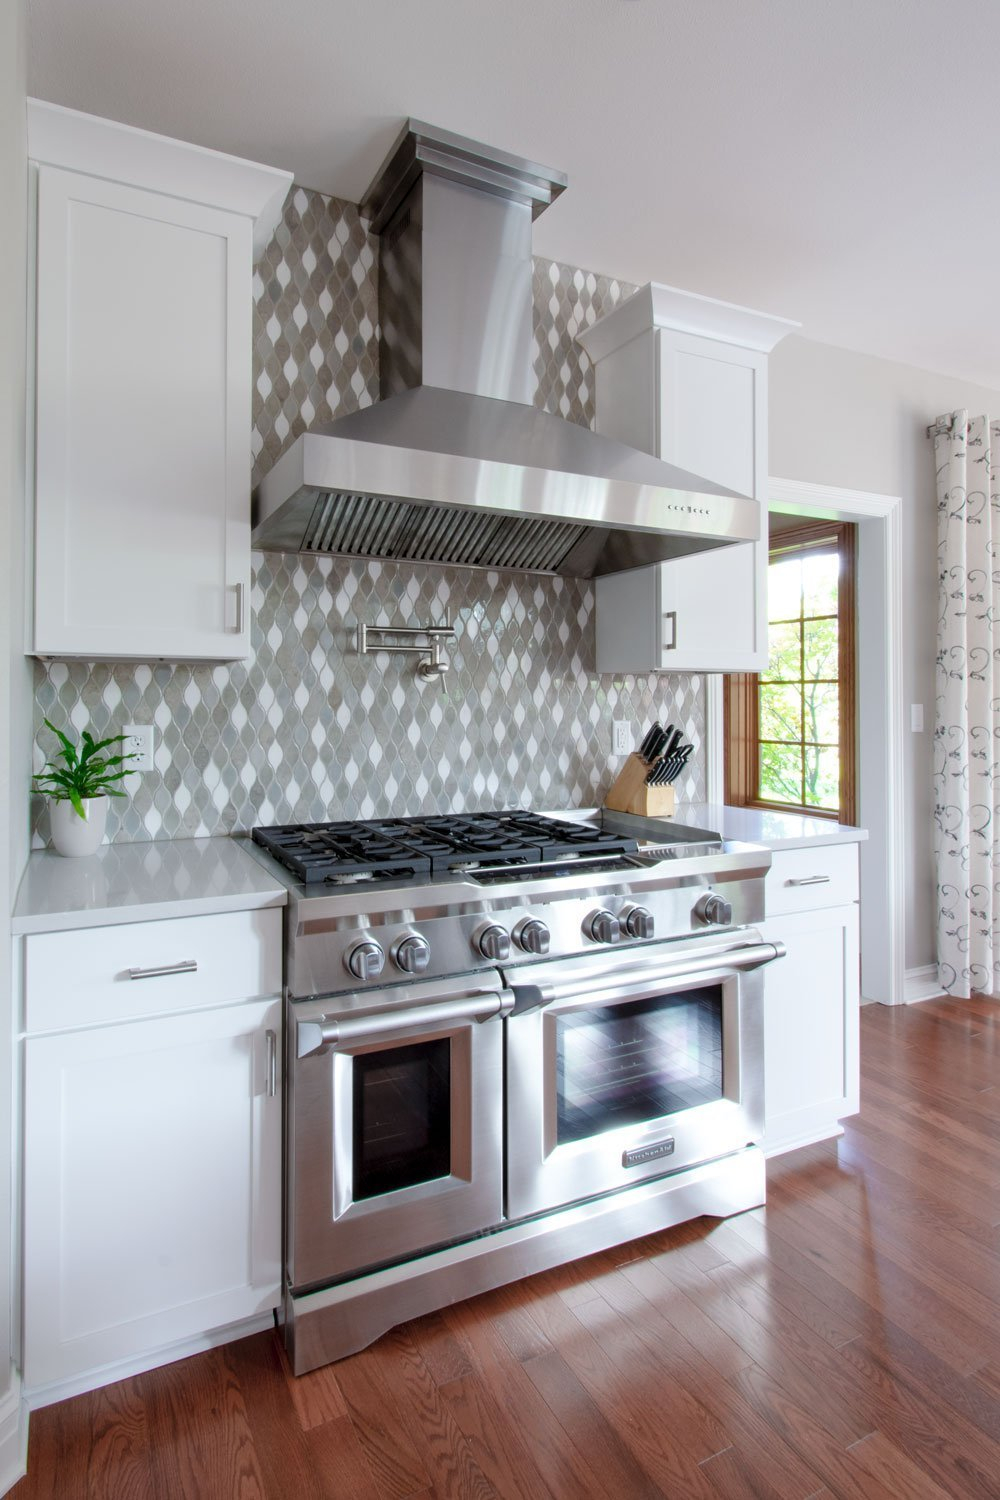 Pewaukee kitchen remodel with white shaker cabinets and pot filler faucet